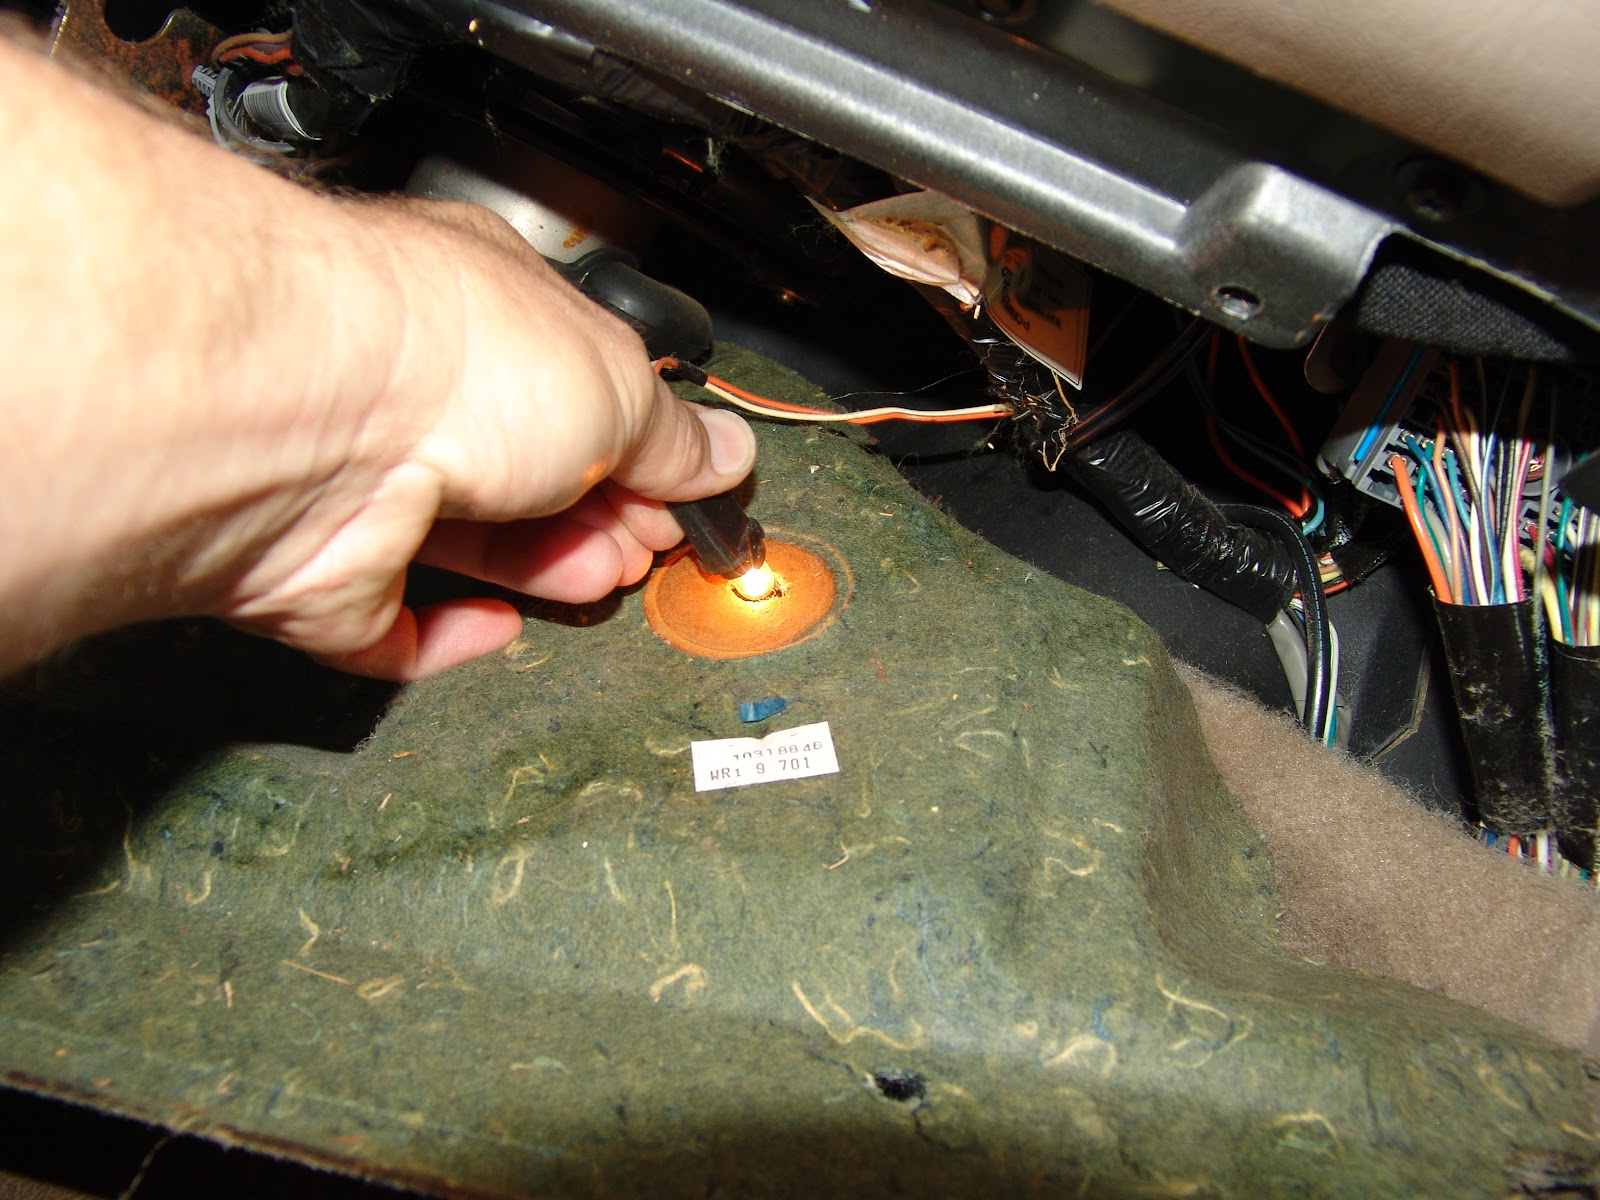 chevy cavalier stereo wiring diagram free download 2003 pontiac abs wiring diagram free download